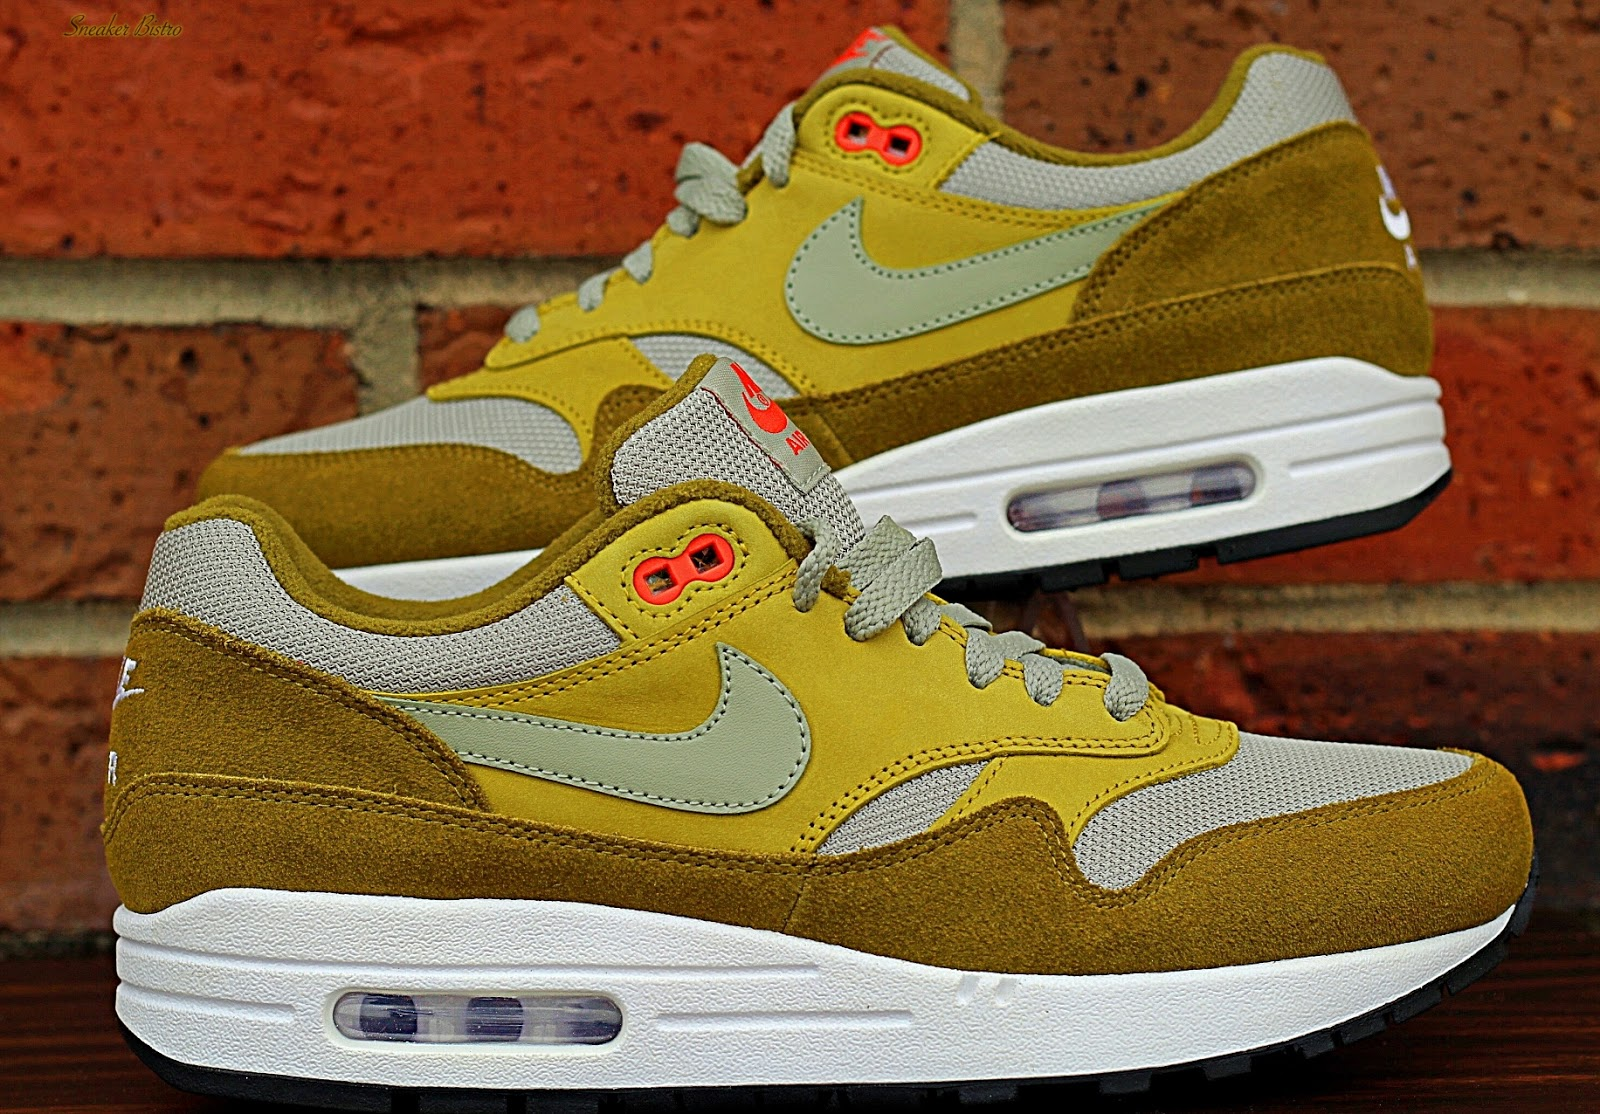 check out 1fb2b c5671 Nike Air Max 1 Premium Retro Red Curry   Green Curry. Green Curry